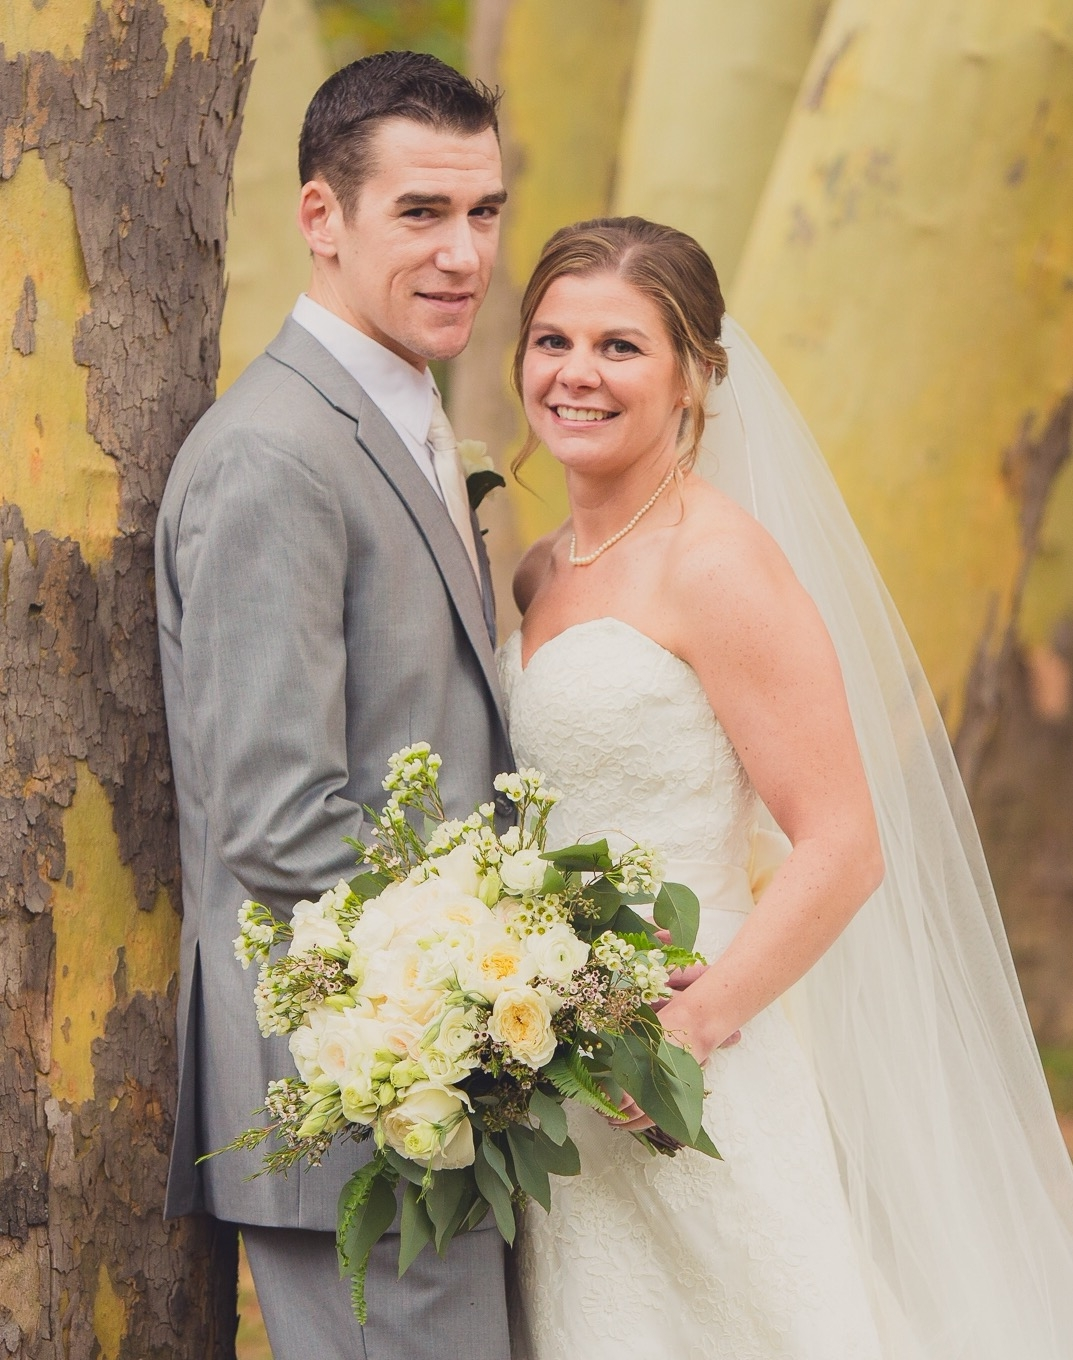 Katherine A Sampson and Brett J. Glose marry in Christ the King Chapel